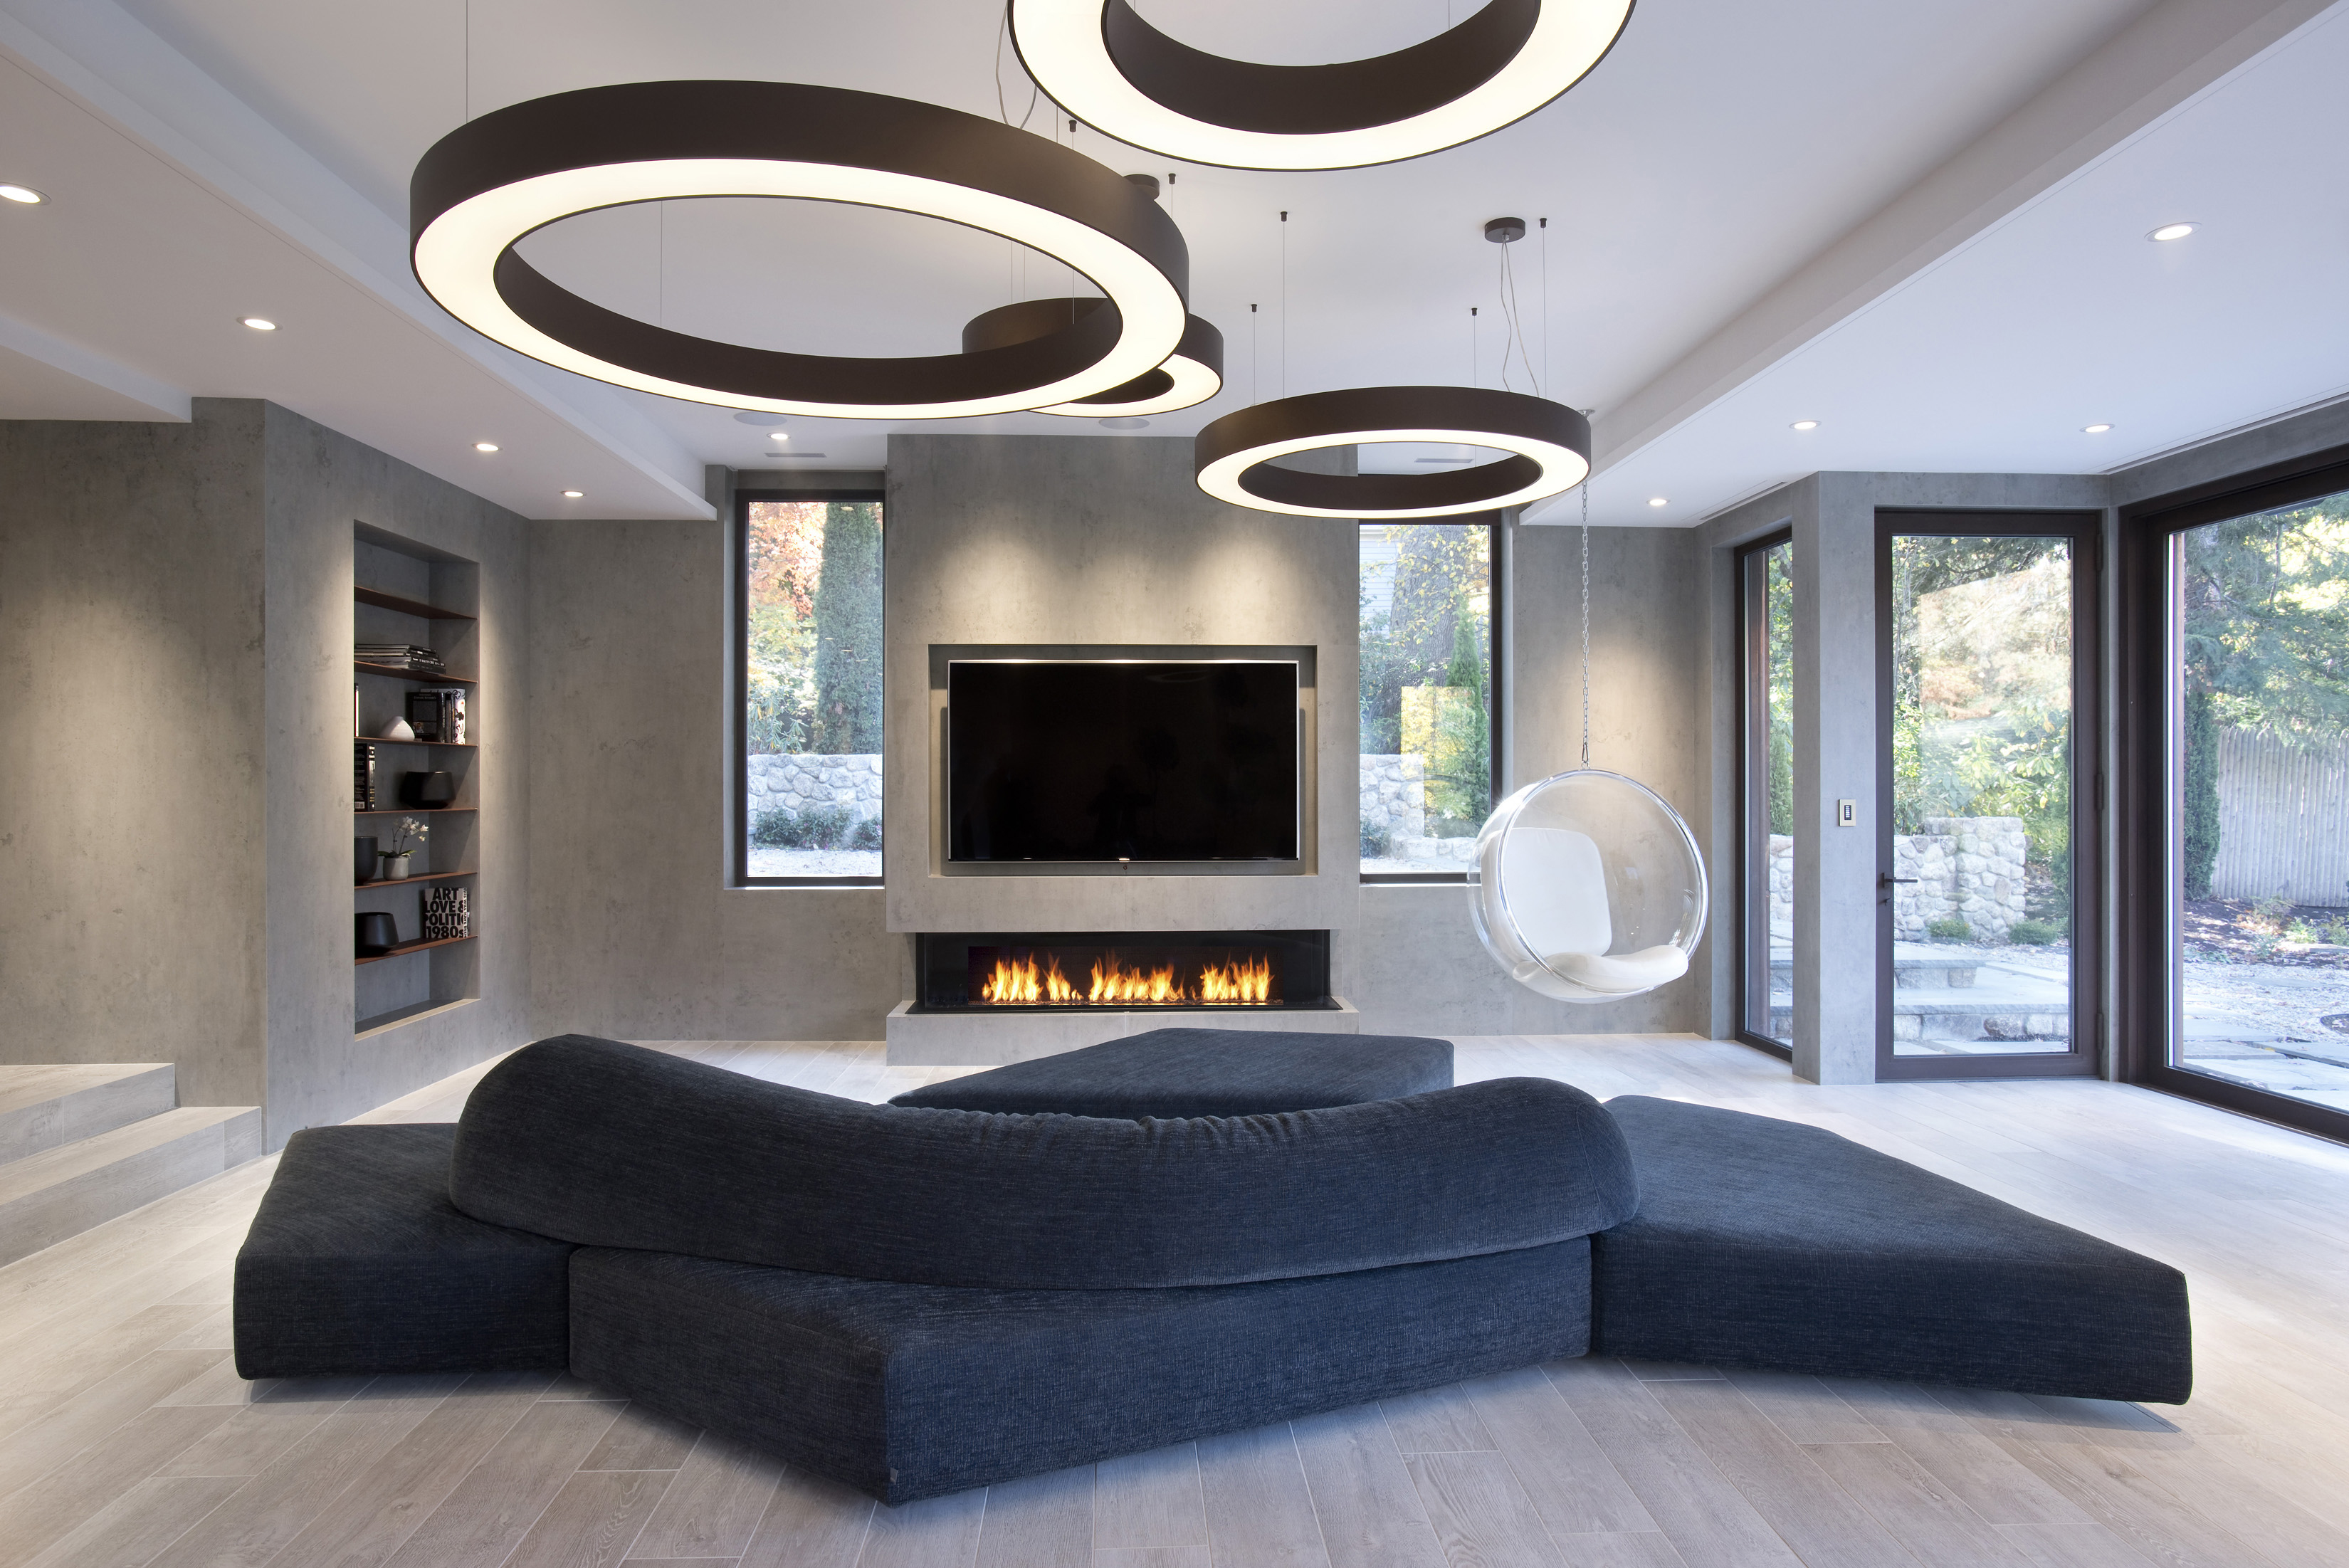 Nero Fire Design Toronto High End Fireplaces Specialist